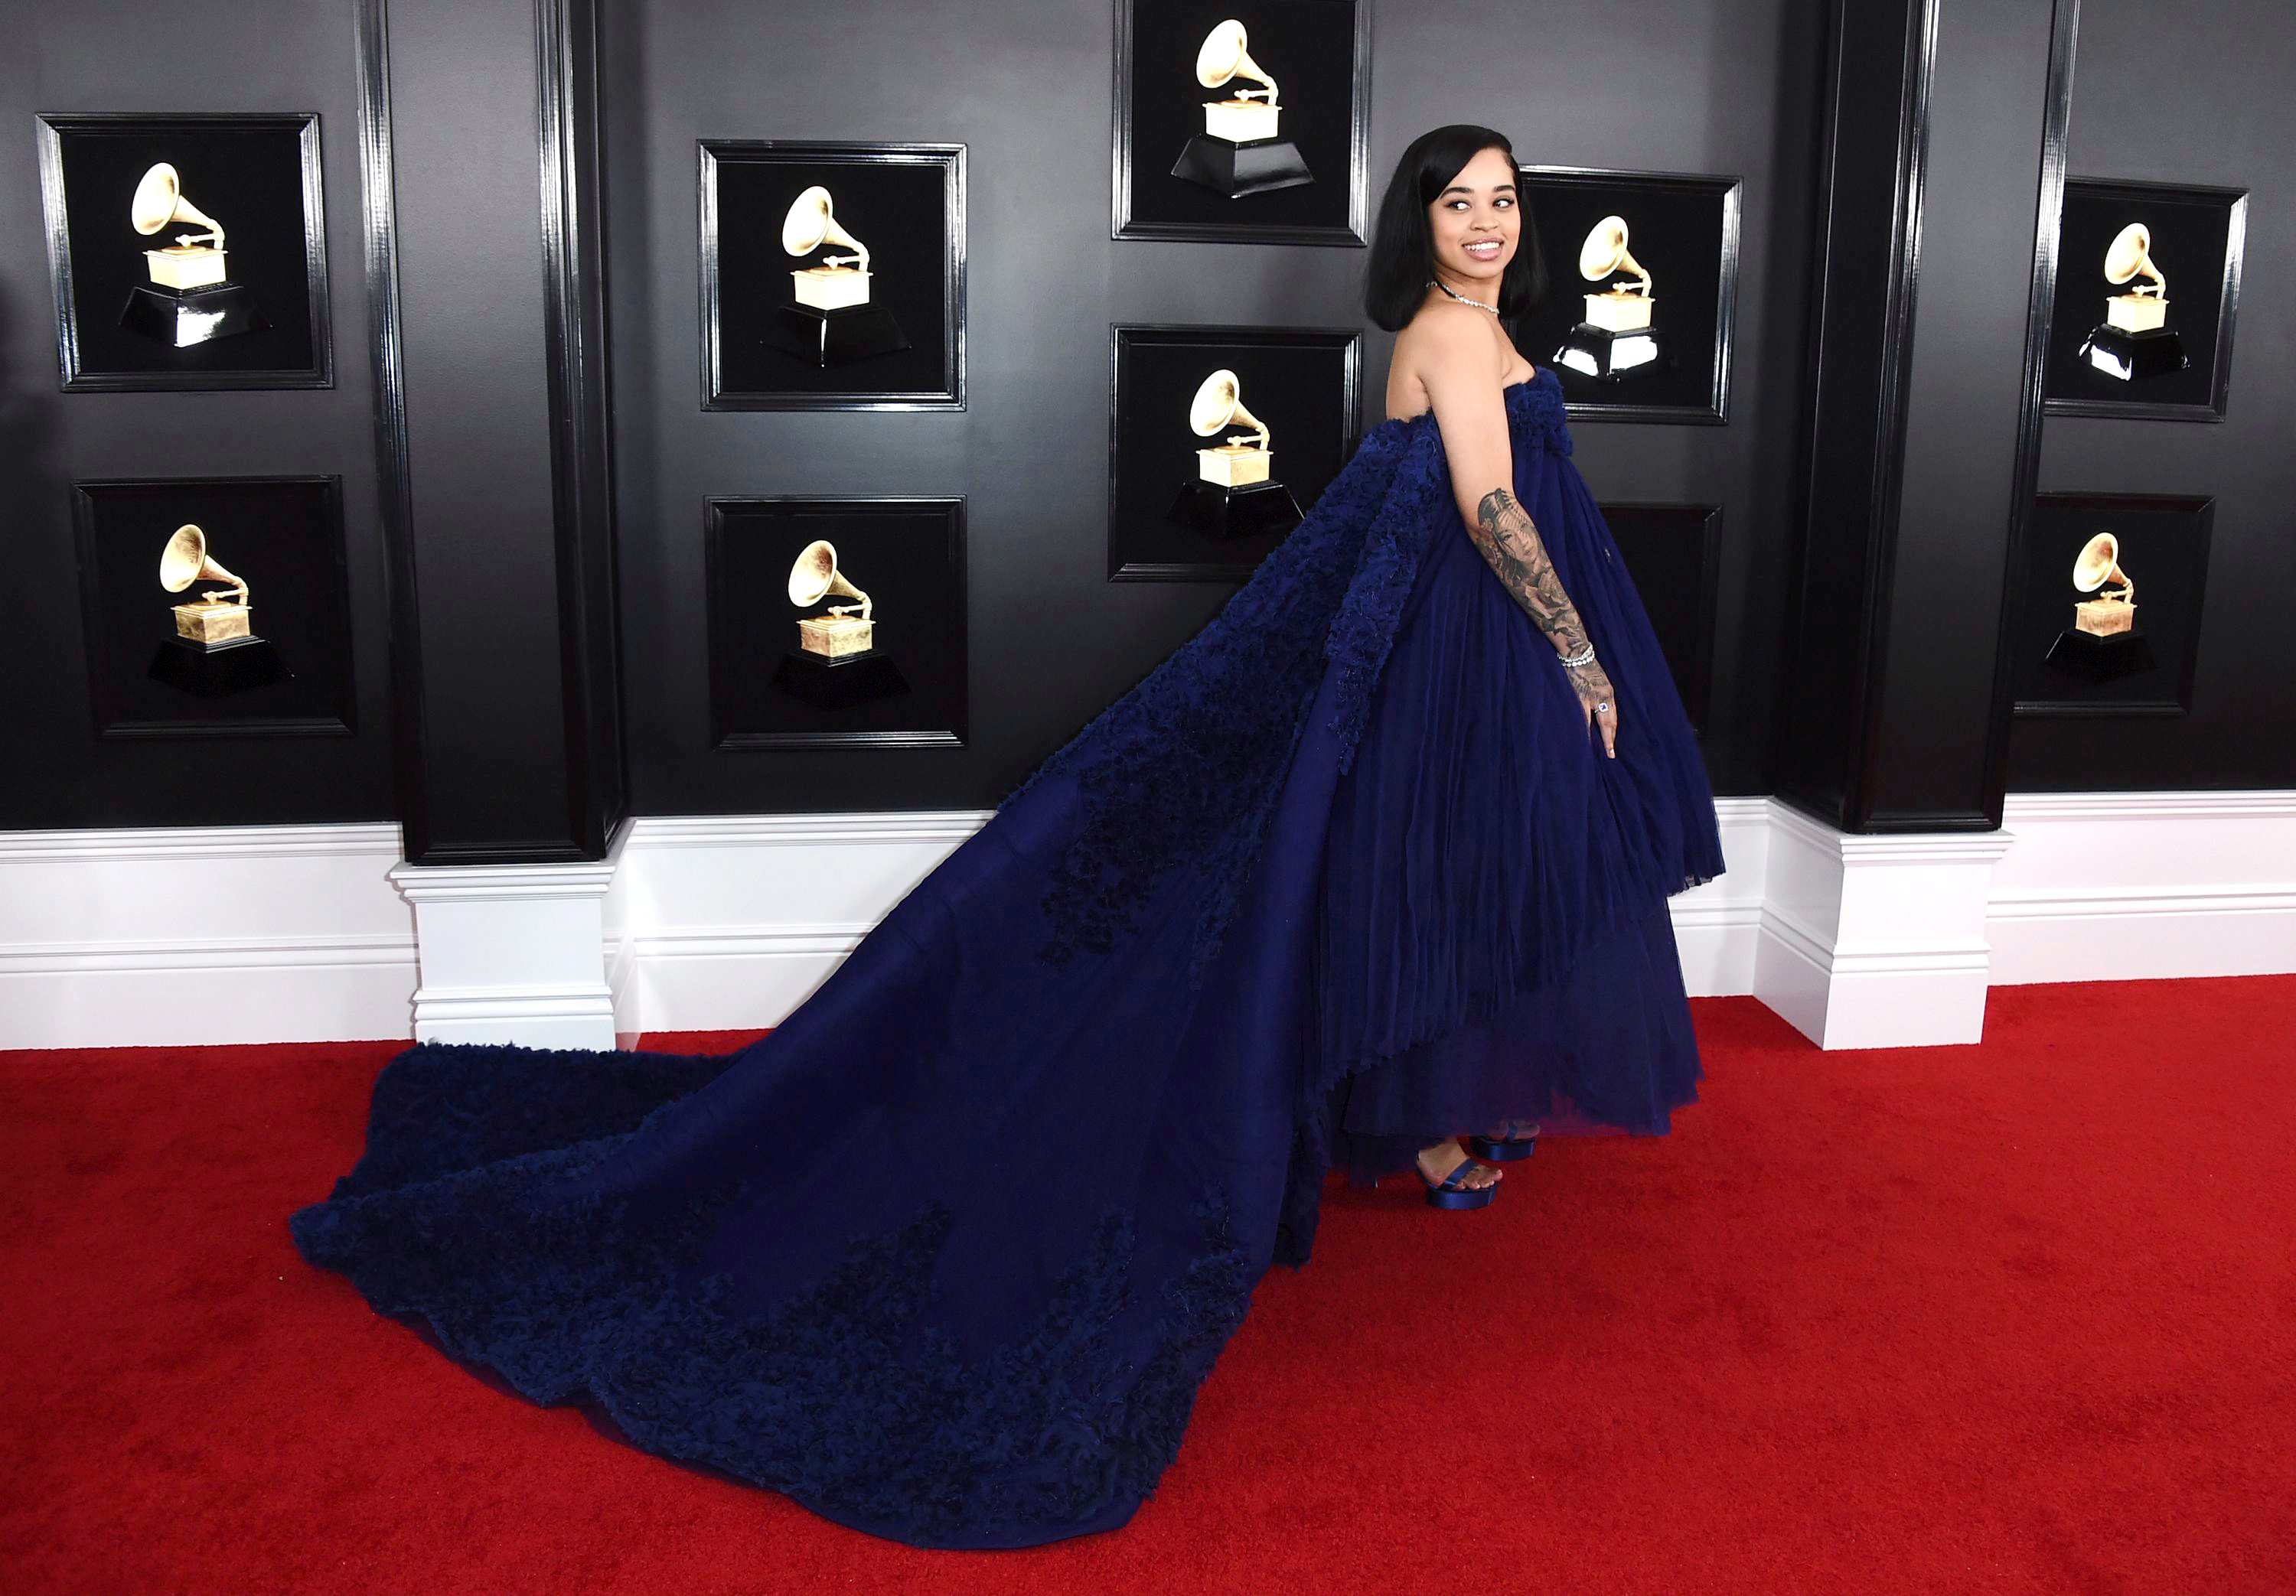 Ella Mai arrives at the 61st annual Grammy Awards at the Staples Center, in Los Angeles61st Annual Grammy Awards - Arrivals, Los Angeles, USA - 10 Feb 2019